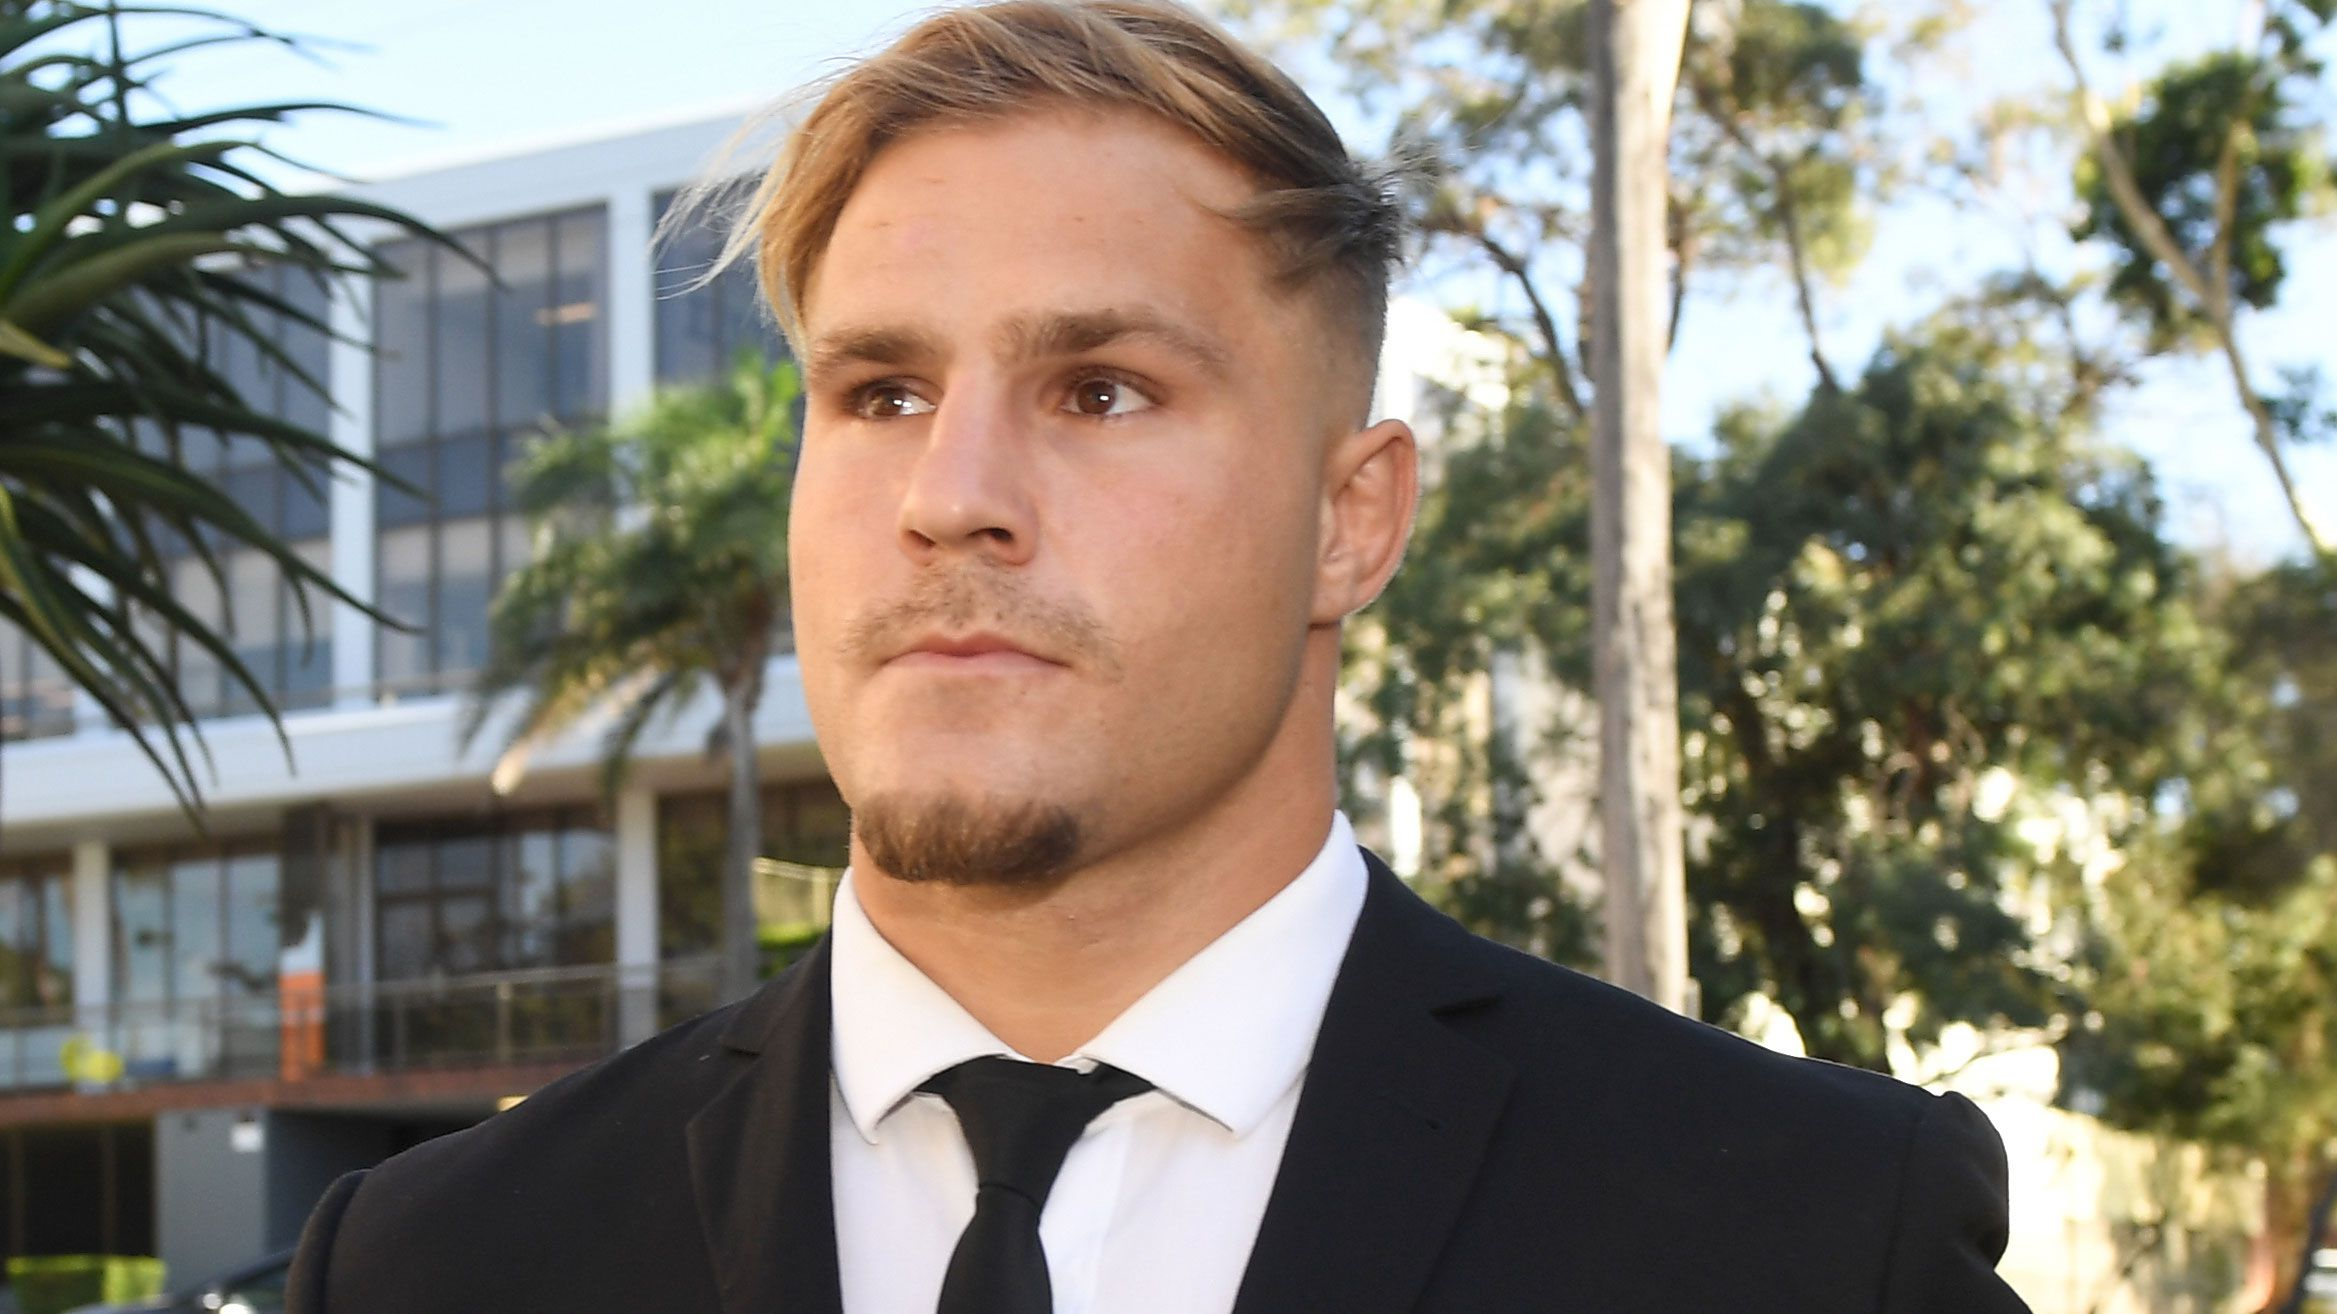 Rugby League Players Association claims 'inherent unfairness' after latest delay to Jack de Belin trial